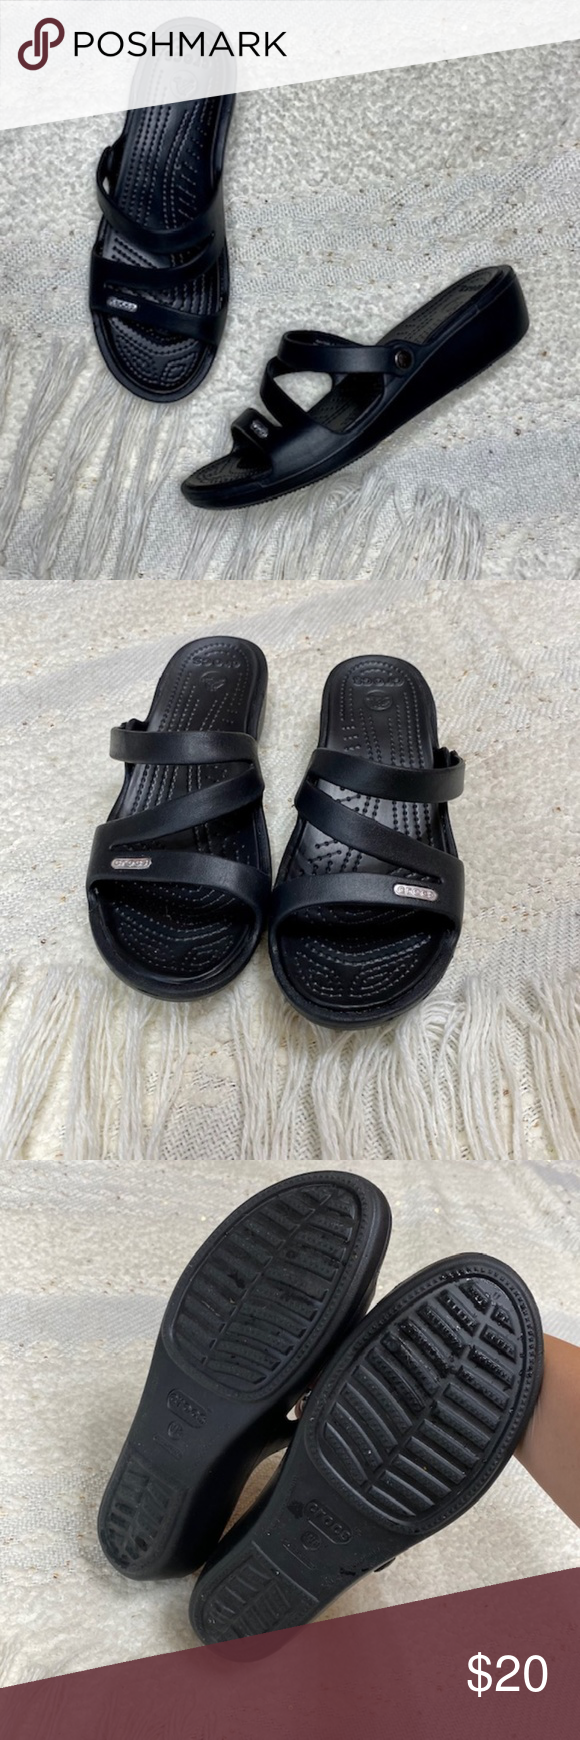 Crocs 'Patricia' black strappy wedge sandals WIDE Crocs.  Patricia.  Black strappy low wedge sandals.  Excellent used condition, minimal wear. Smoke free. Size 8W. 2 wedge heel.  Offers are welcomed. A83A91. CROCS Shoes Sandals #lowwedgesandals